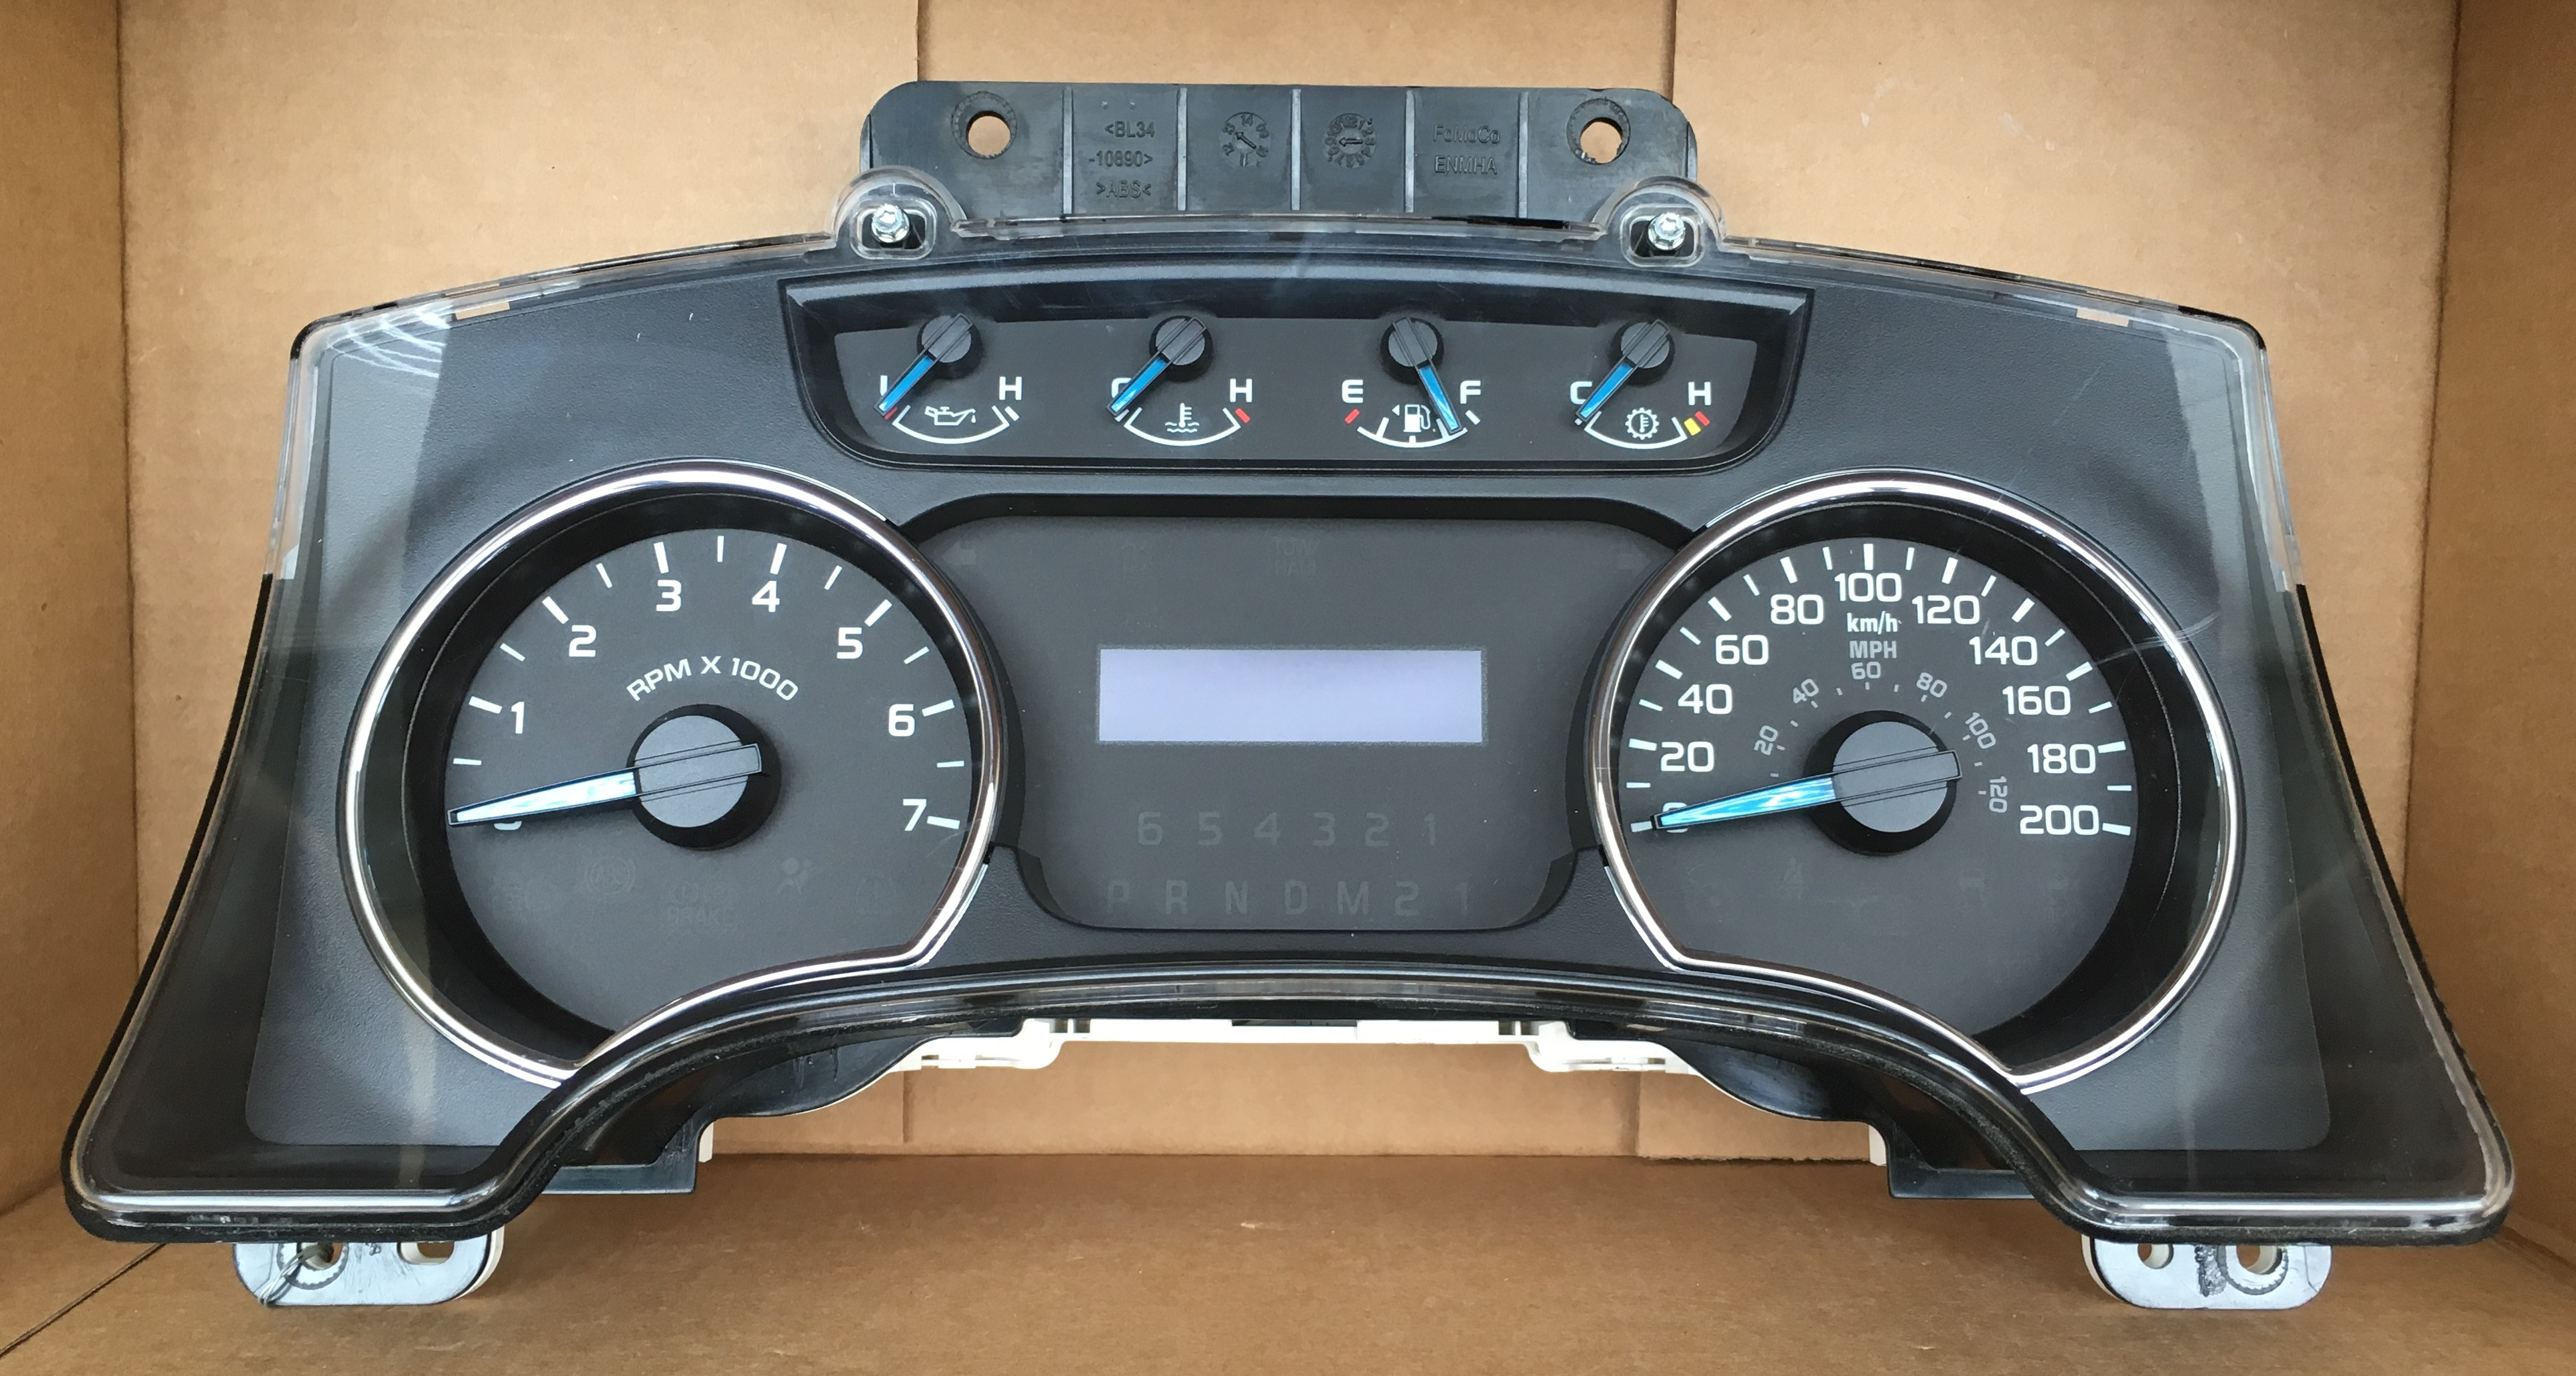 2014 FORD F150 FX2, FX4, XLT USED DASHBOARD INSTRUMENT CLUSTER FOR SALE  (KM/H)